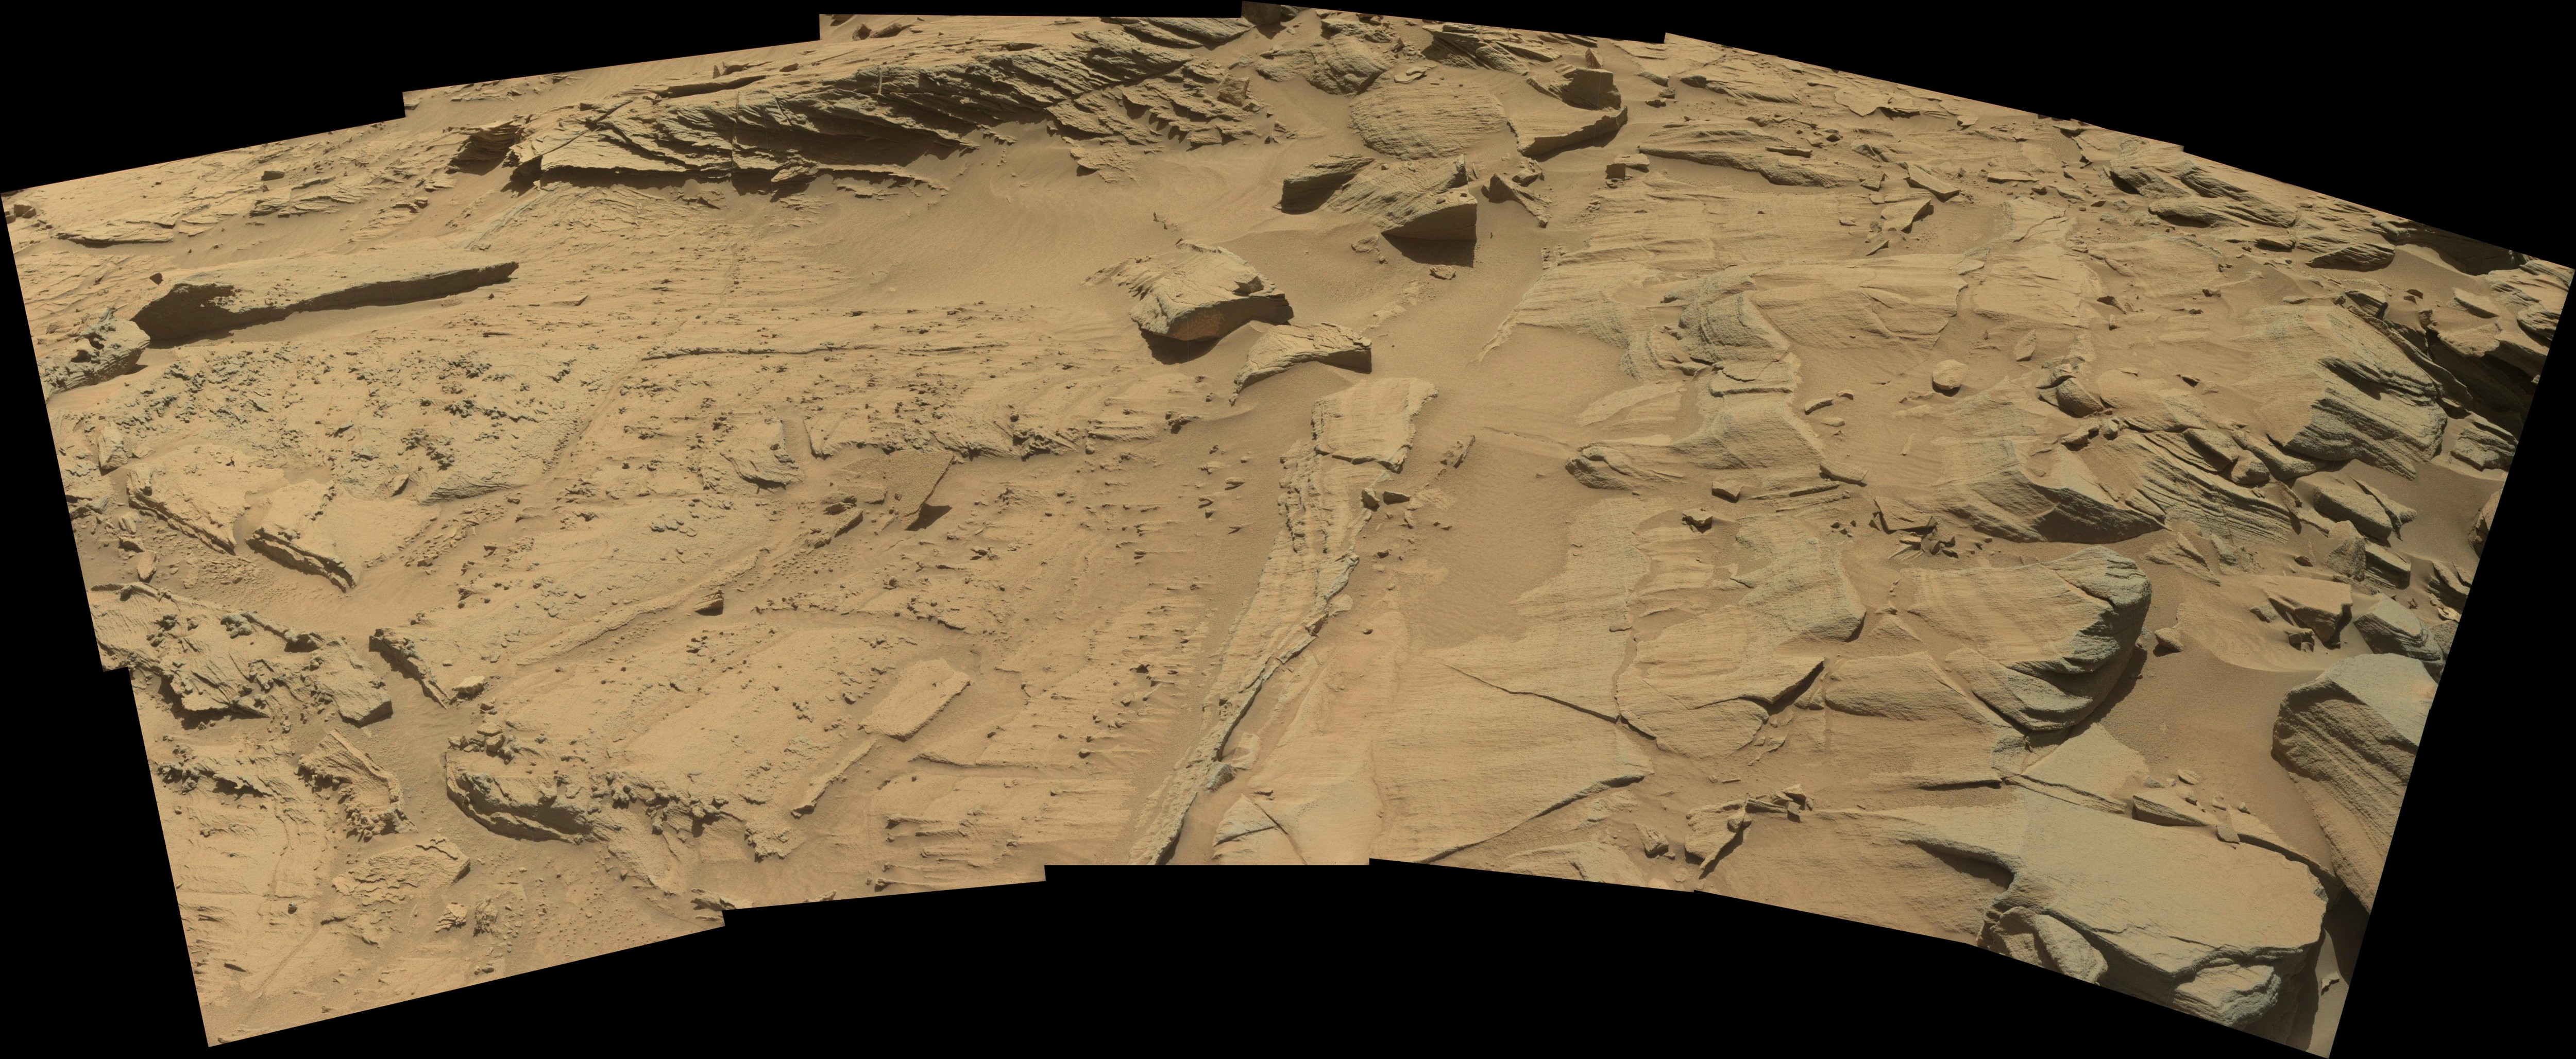 Curiosity Rover Panoramic View 1 of Mars Sol 1293 – Click to enlarge